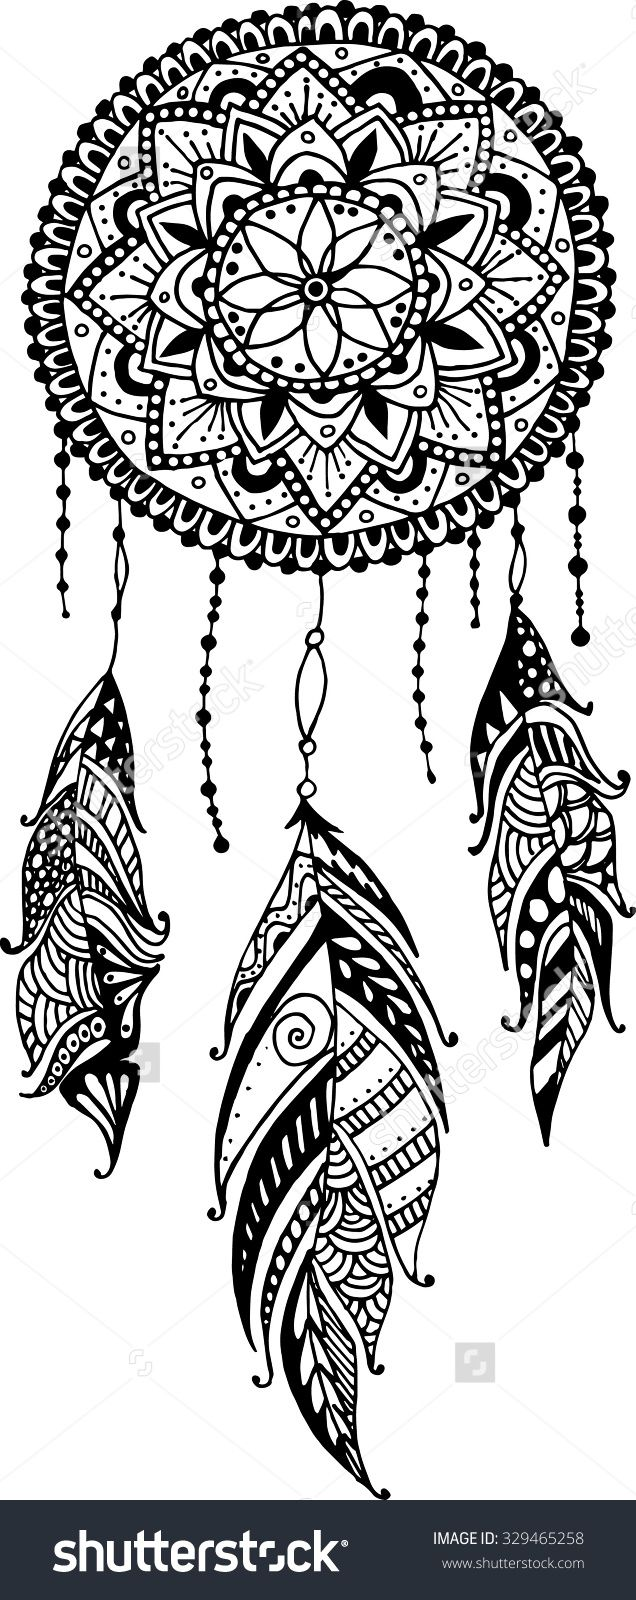 Mandala Dreamcatcher Feathers Tribal 329465258 : Shutterstock